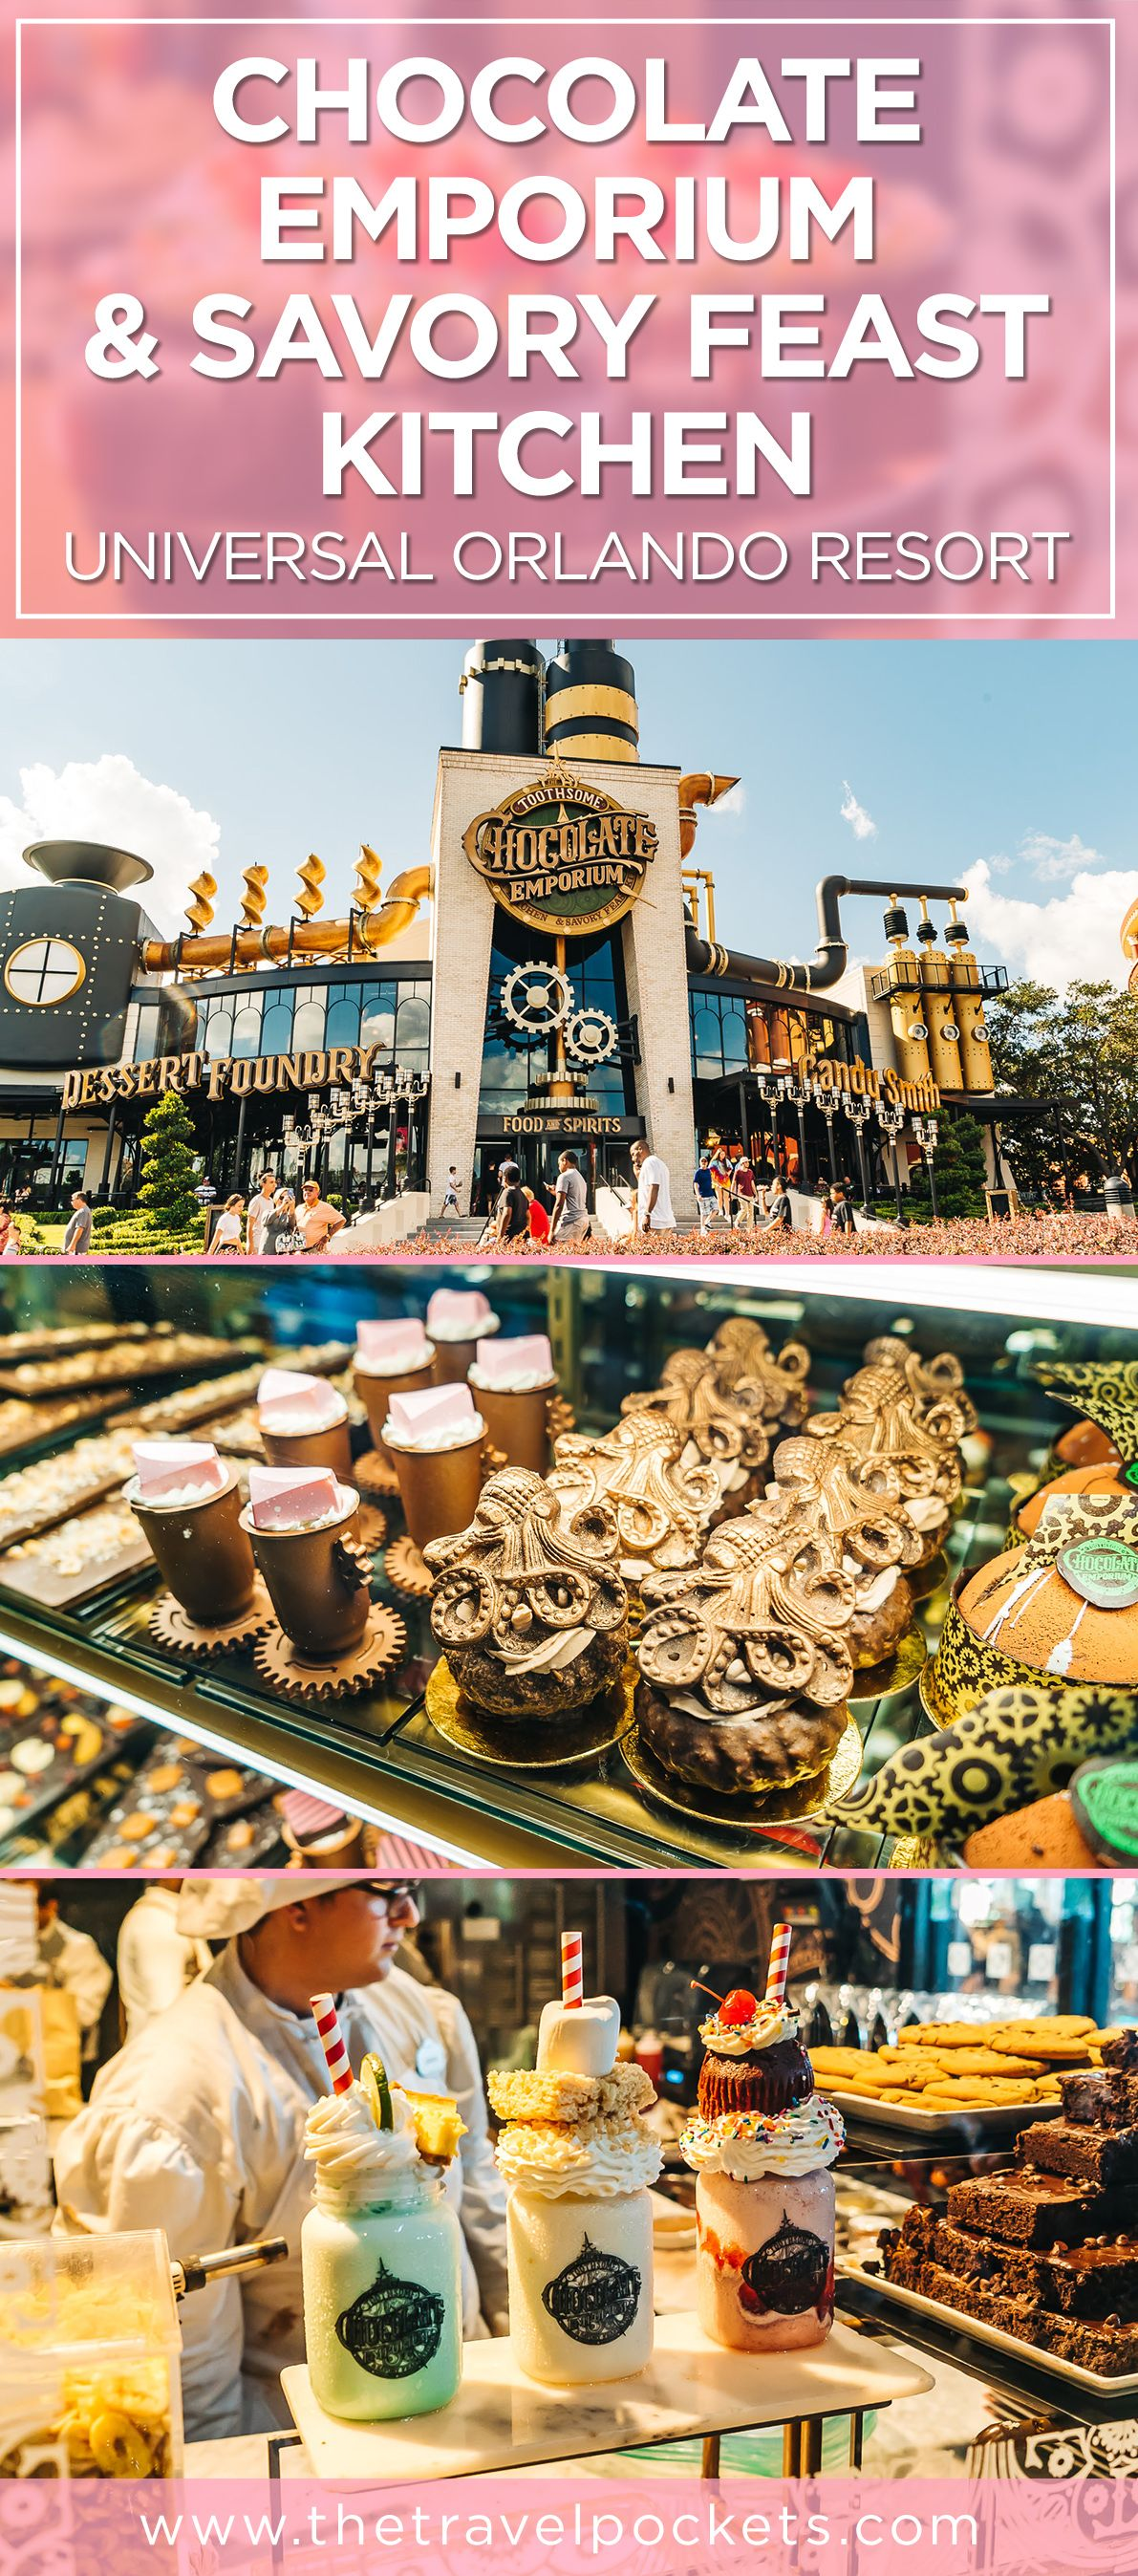 Try The Awesome Chocolate Factory In Orlando At Toothsome Chocolate Emporium Travel Pockets Universal Orlando Resort Orlando Resorts Orlando Florida Vacation